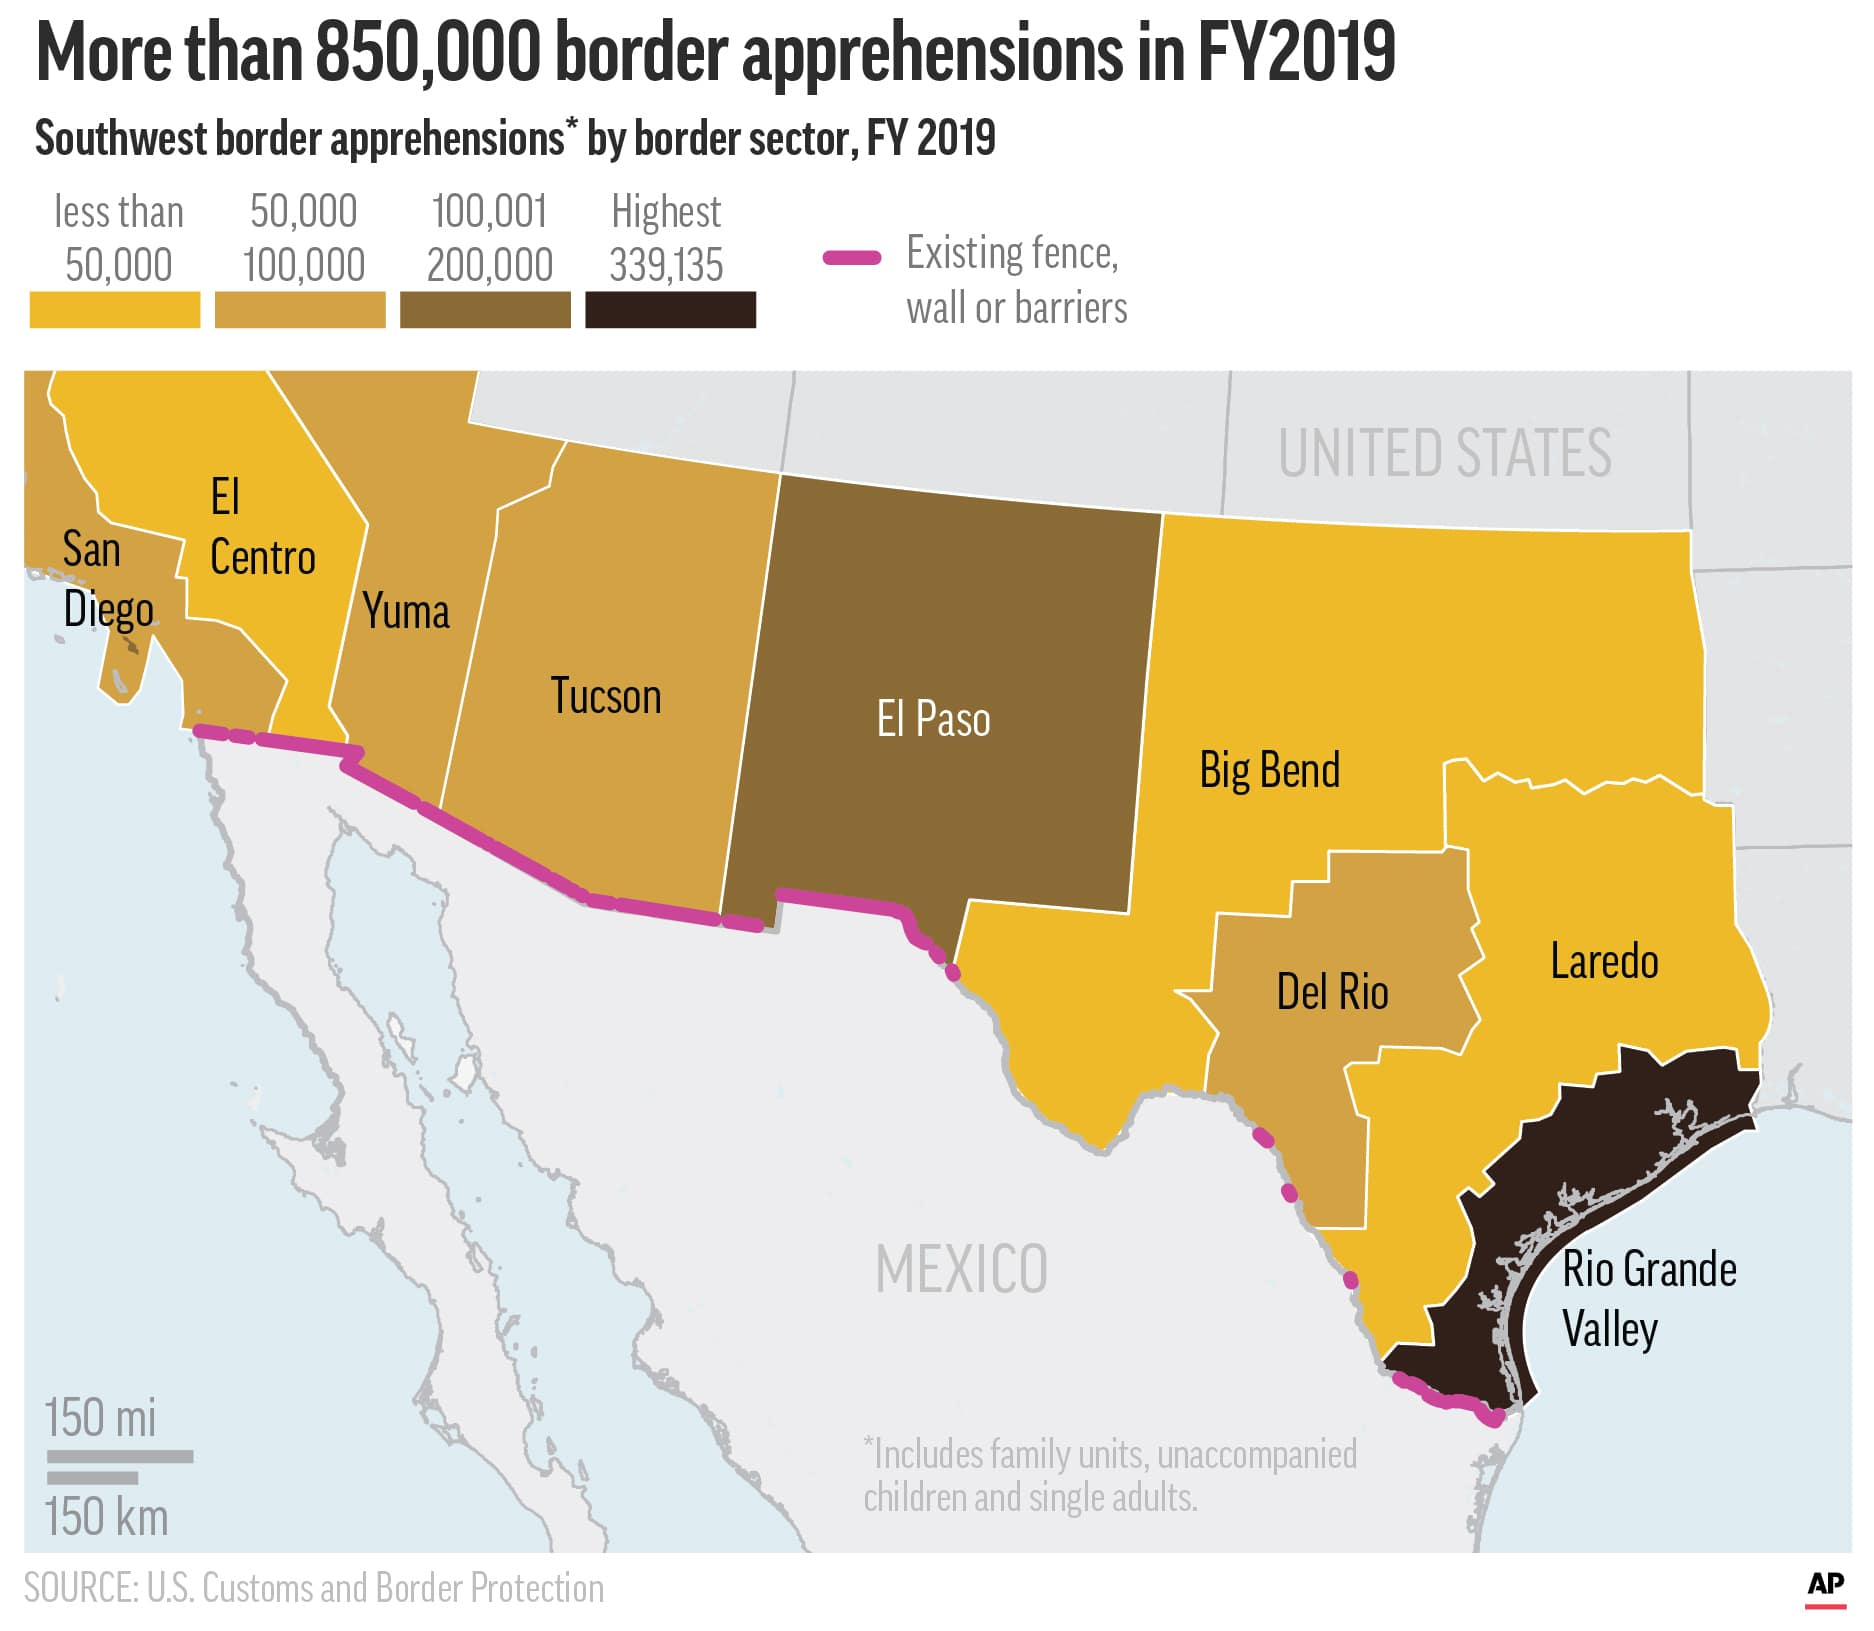 Graphic showing existing border fence and barriers built and apprehensions by border sector